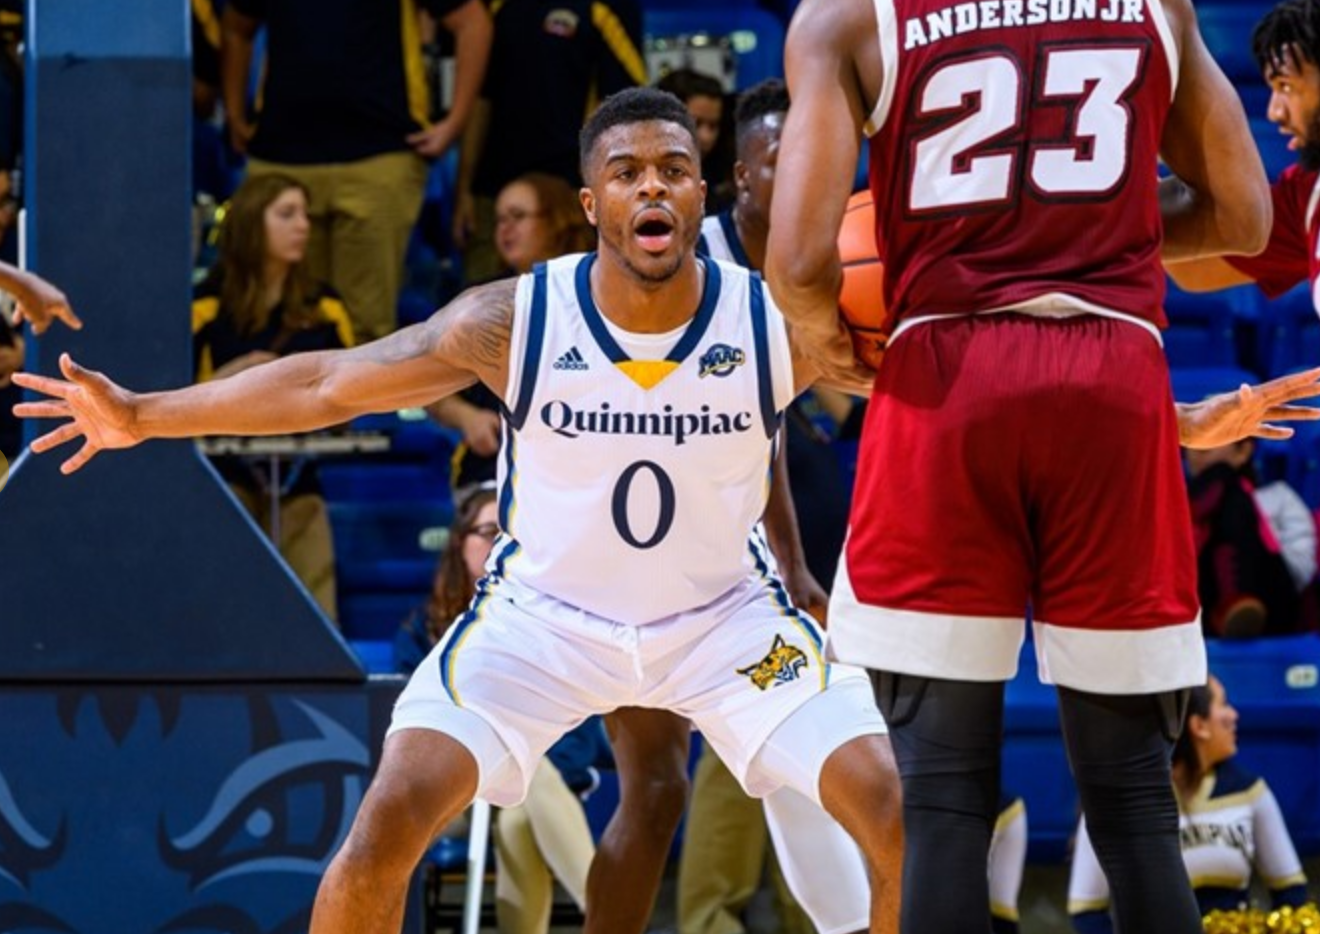 Aaron Robinson looks to make a name for himself on Quinnipiac men's basketball team